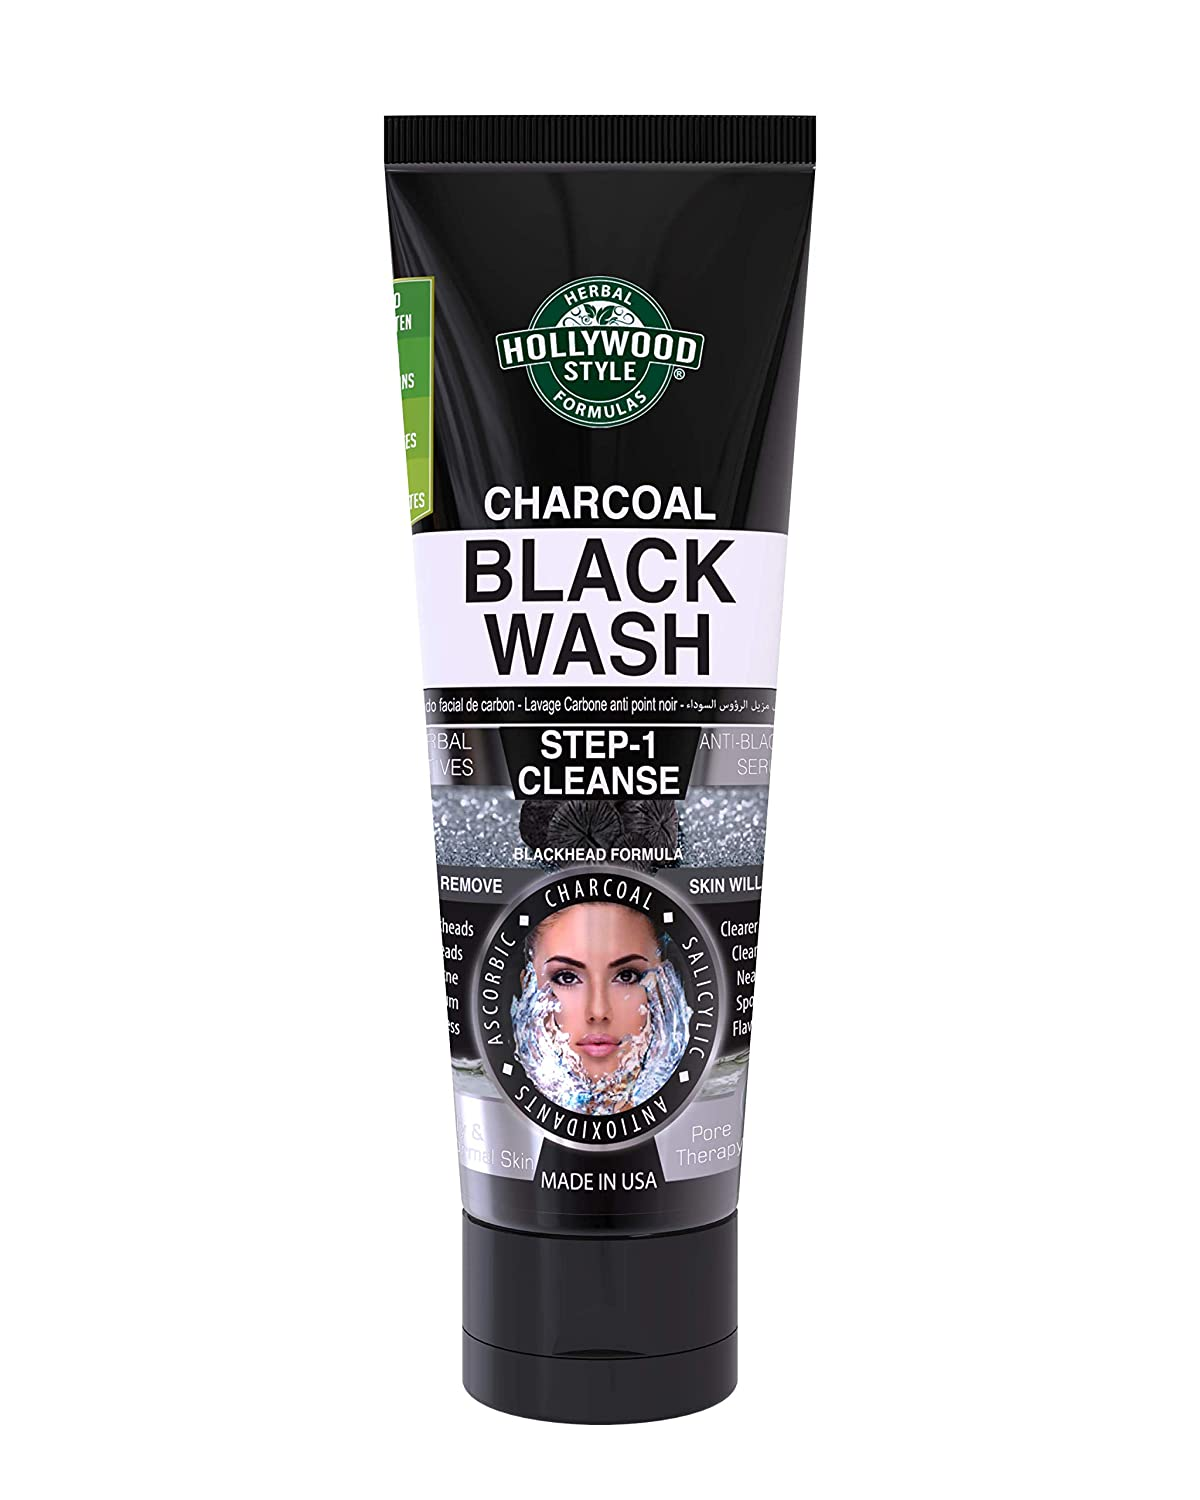 Hollywood Style Activated Charcoal Black Wash Helps Remove Acne and Blackheads, 3.2 fl. Oz.